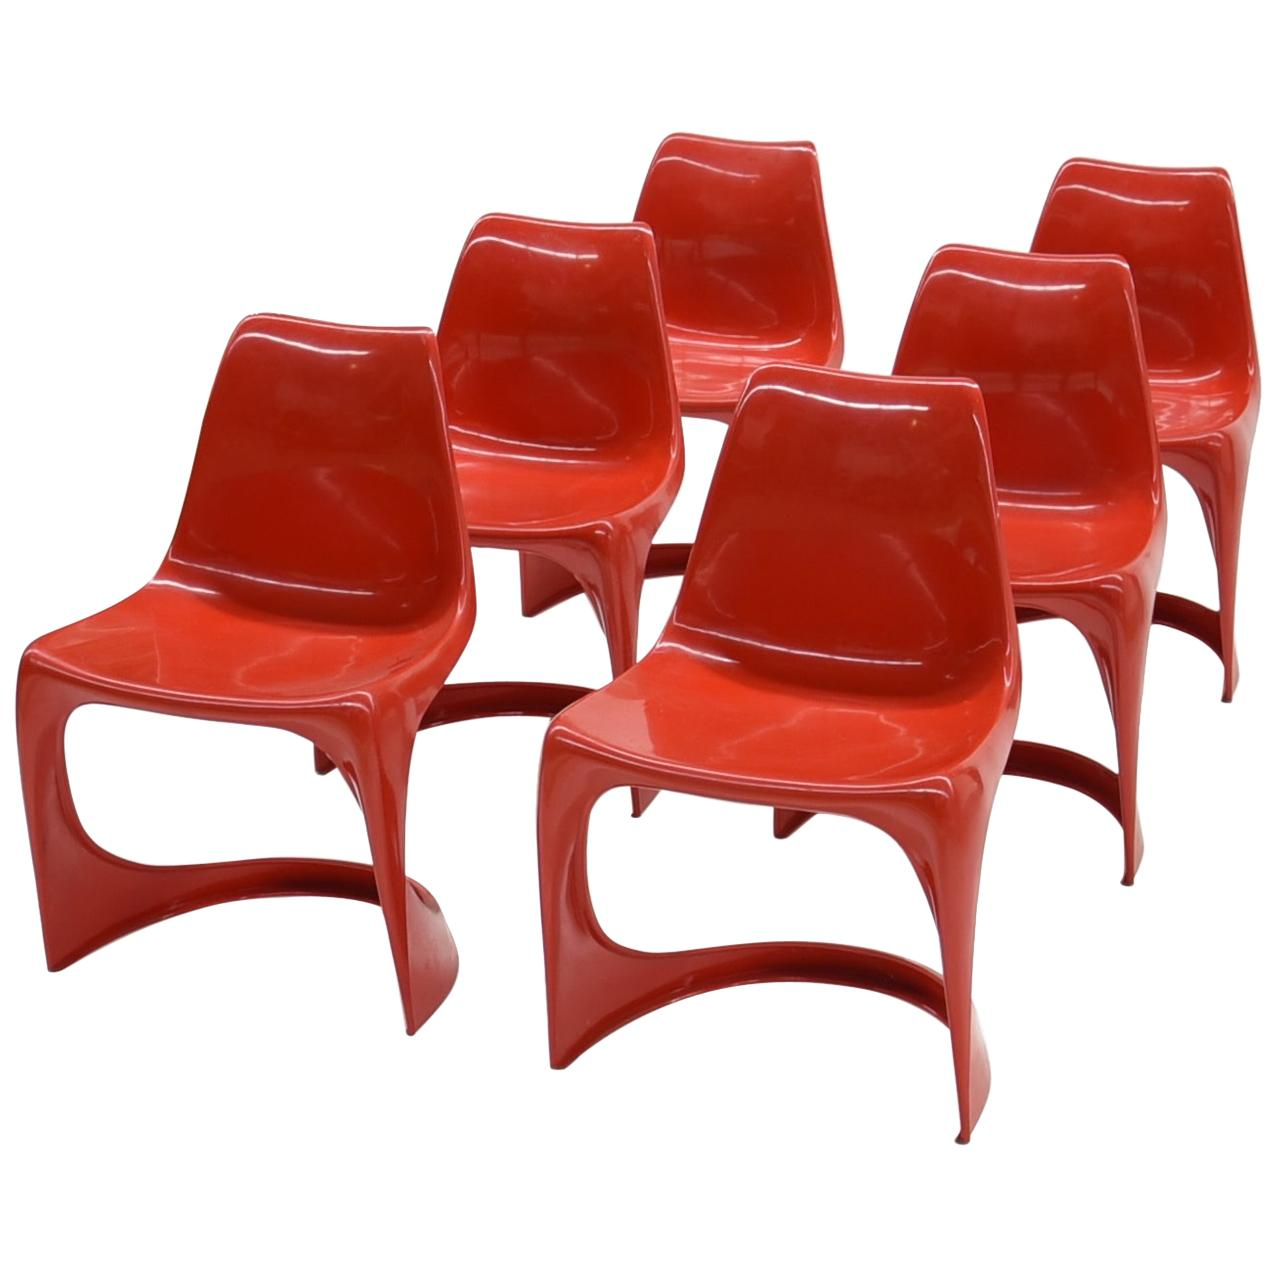 6 Red Cado 290 Plastic Chairs by Steen Østergaard, 1970s